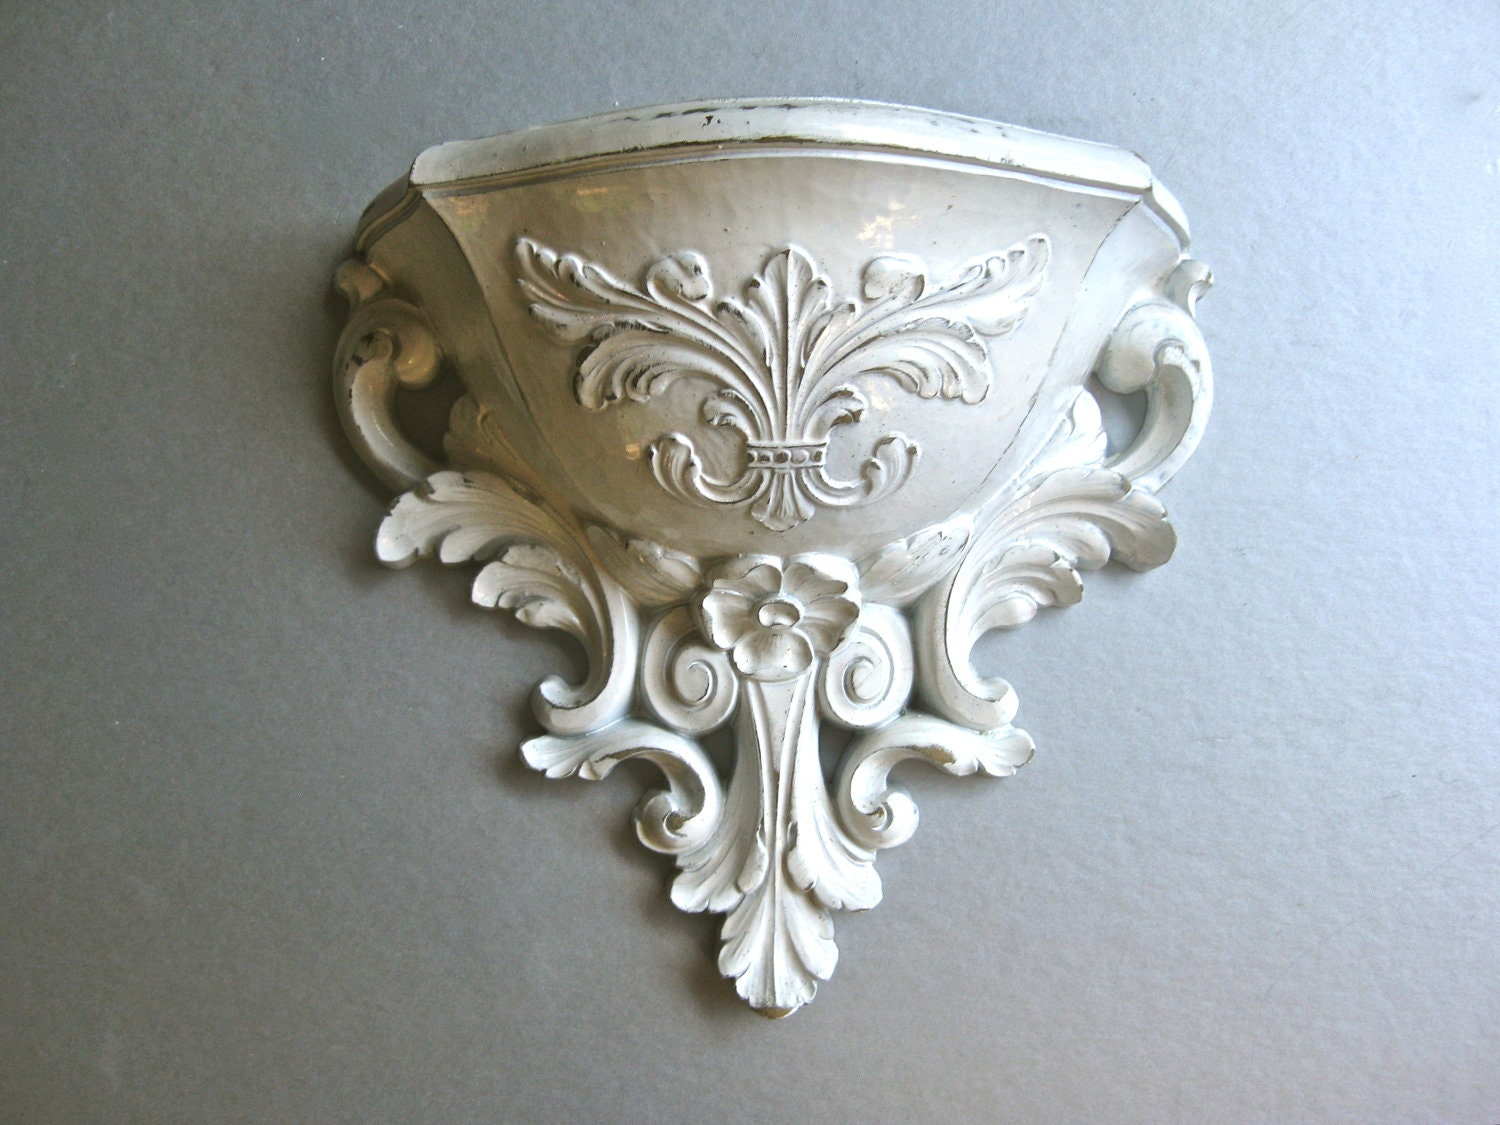 Wall Sconces Planters : Vintage Wall Pocket Wall Sconce Planter Shabby Chic by Swede13